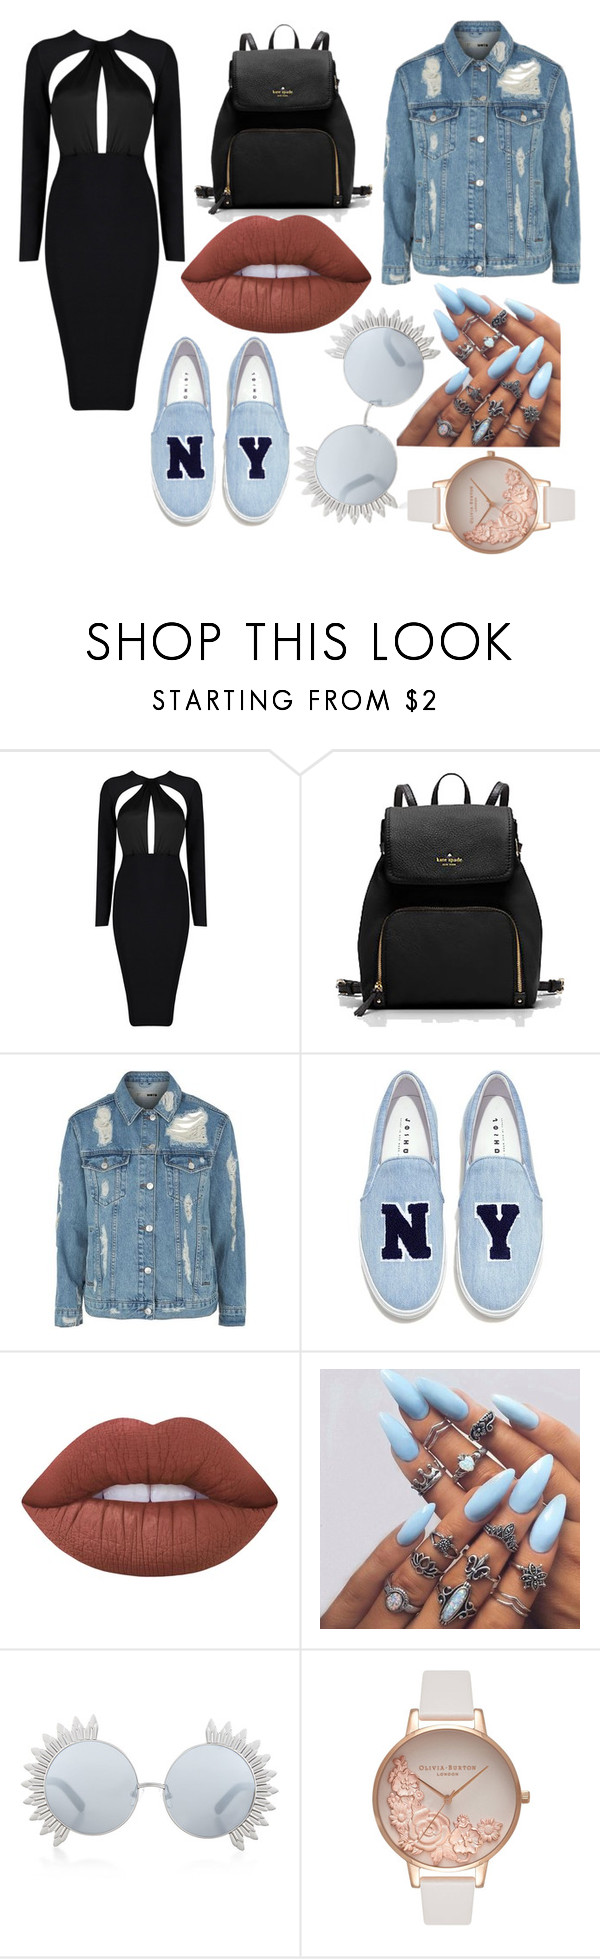 """""""Sans titre #309"""" by estelle24 ❤ liked on Polyvore featuring Topshop, Joshua's, Lime Crime, Linda Farrow and Olivia Burton"""